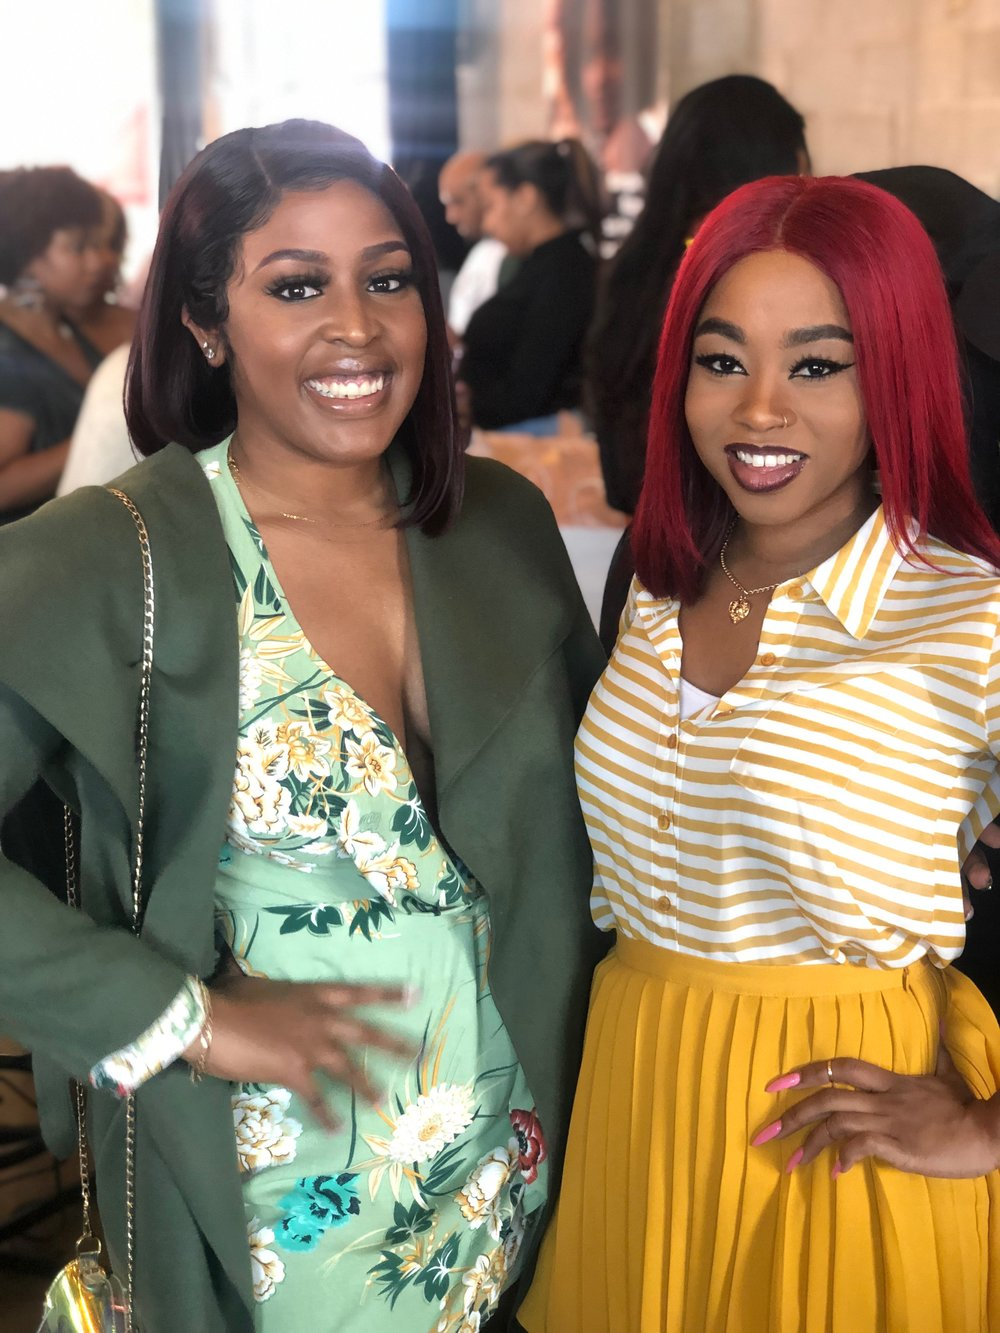 I ran into my fellow Blogging Sis and Influencer  @doubleostyles